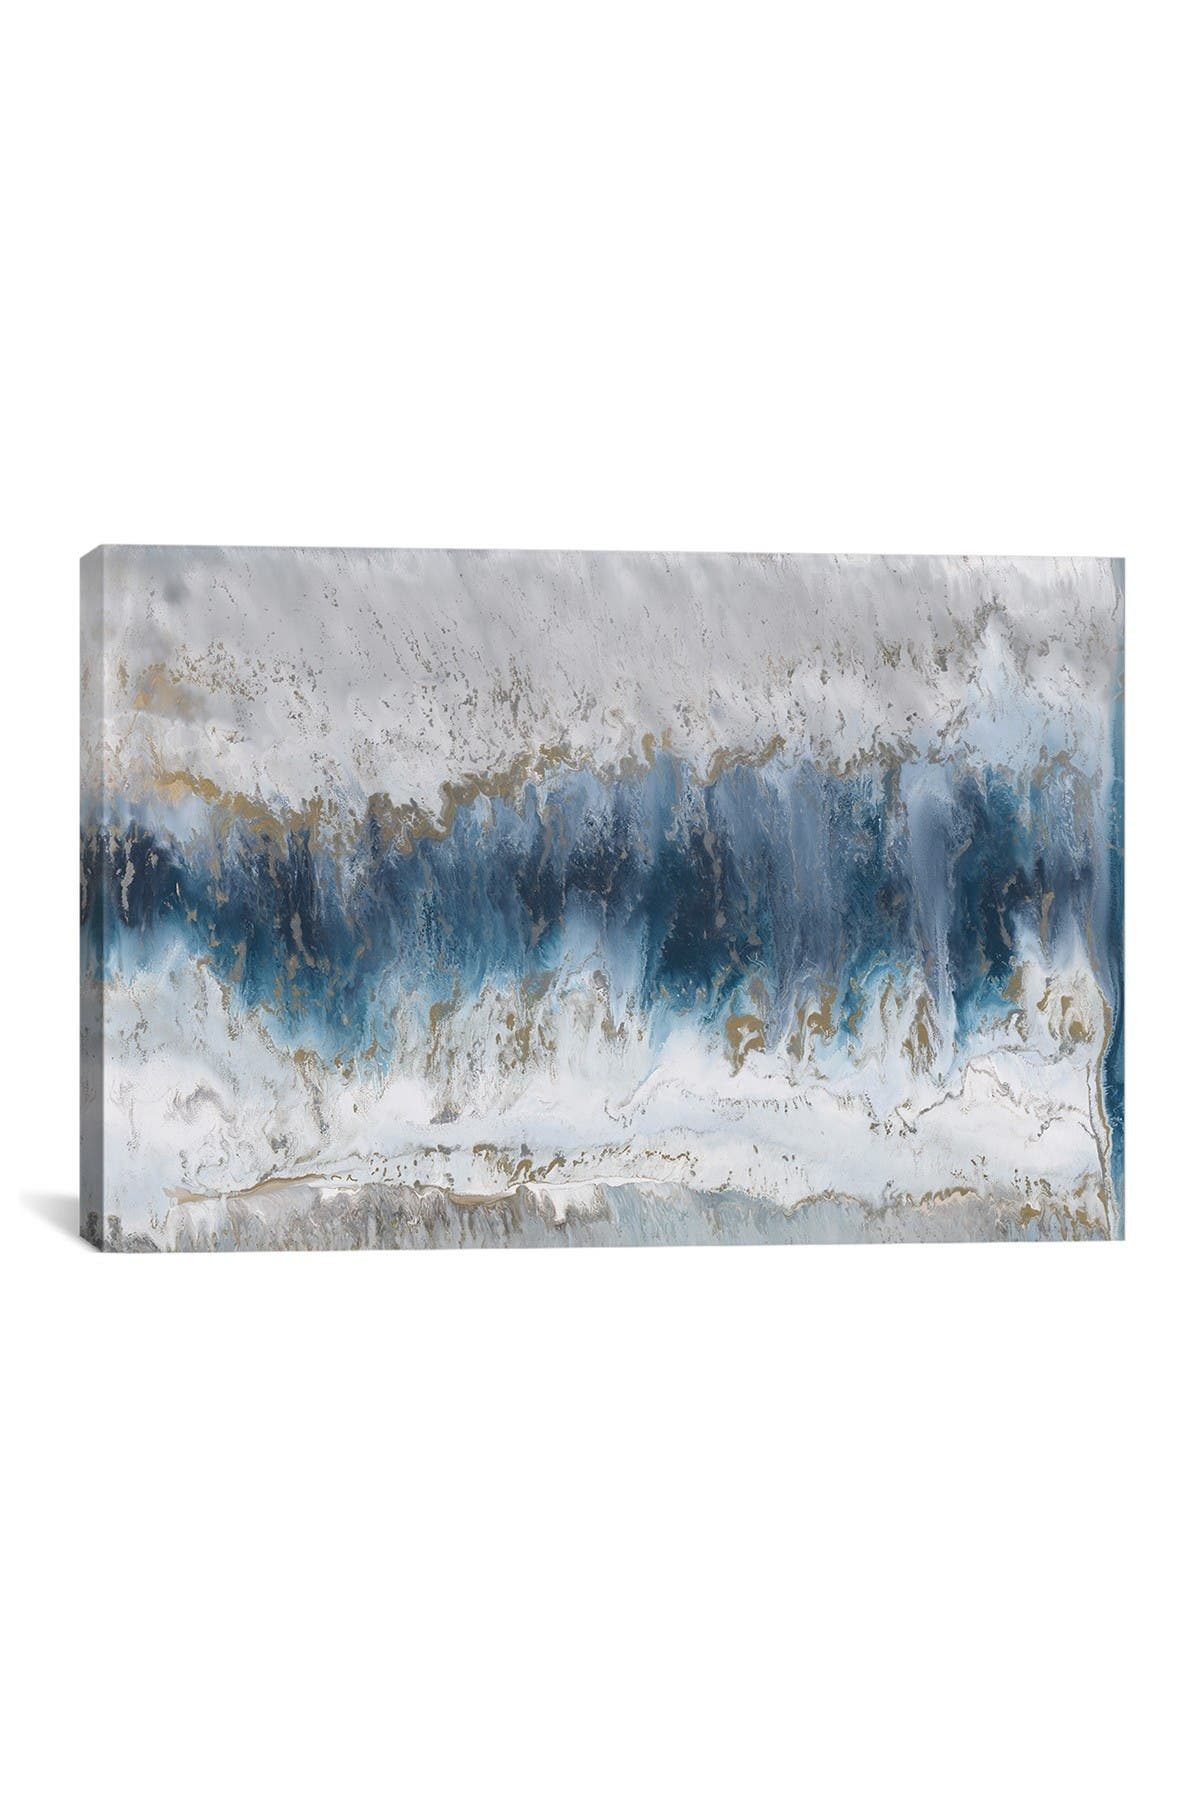 Image of iCanvas Moon Stone by Blakely Bering Wall Art